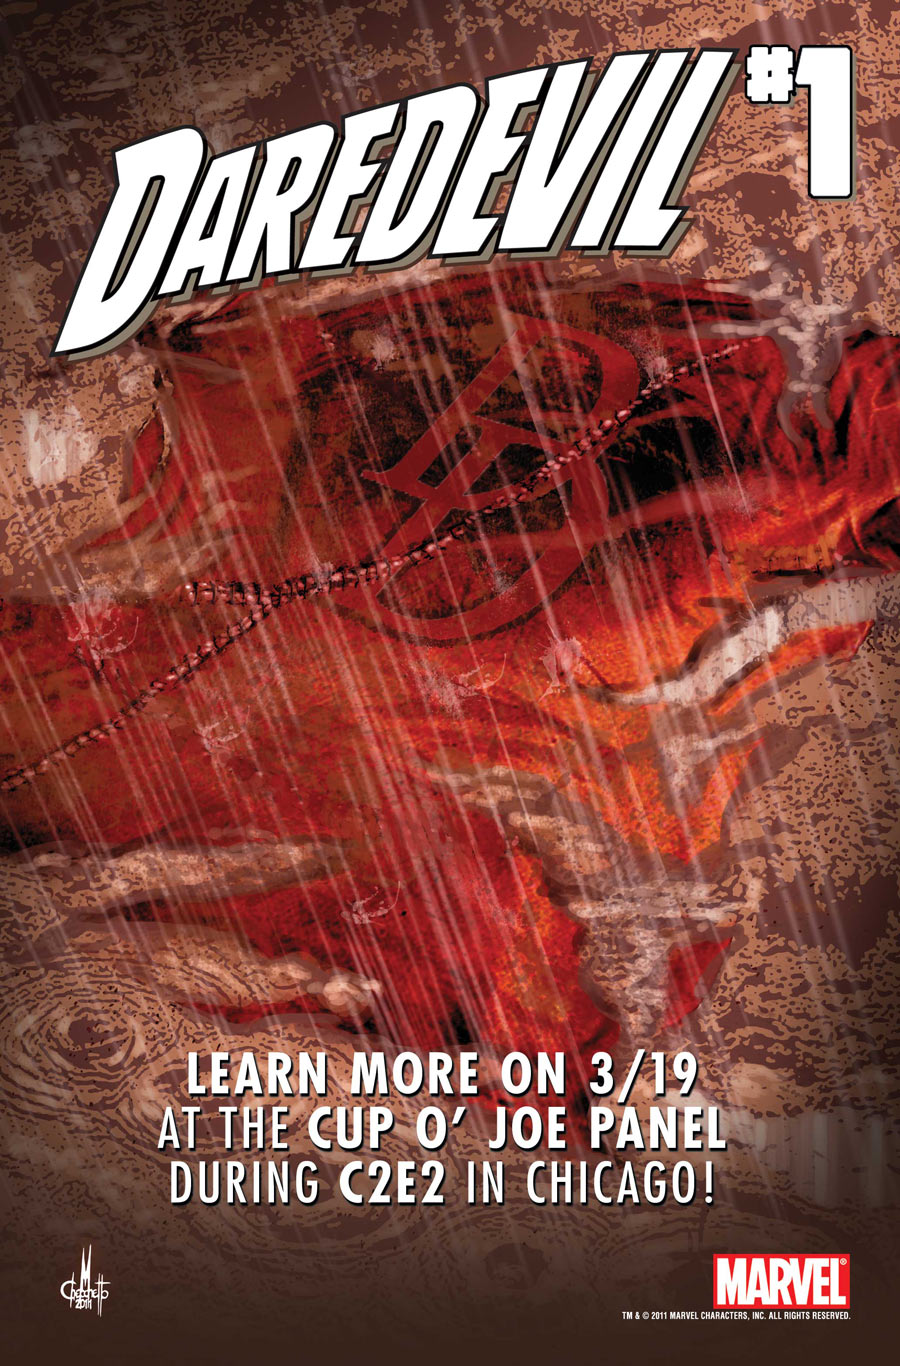 daredevil essays I enjoyed the different essays in this book, concerning the fictional comic book character of daredevil or rather, matt murdock i'am a writer myself.